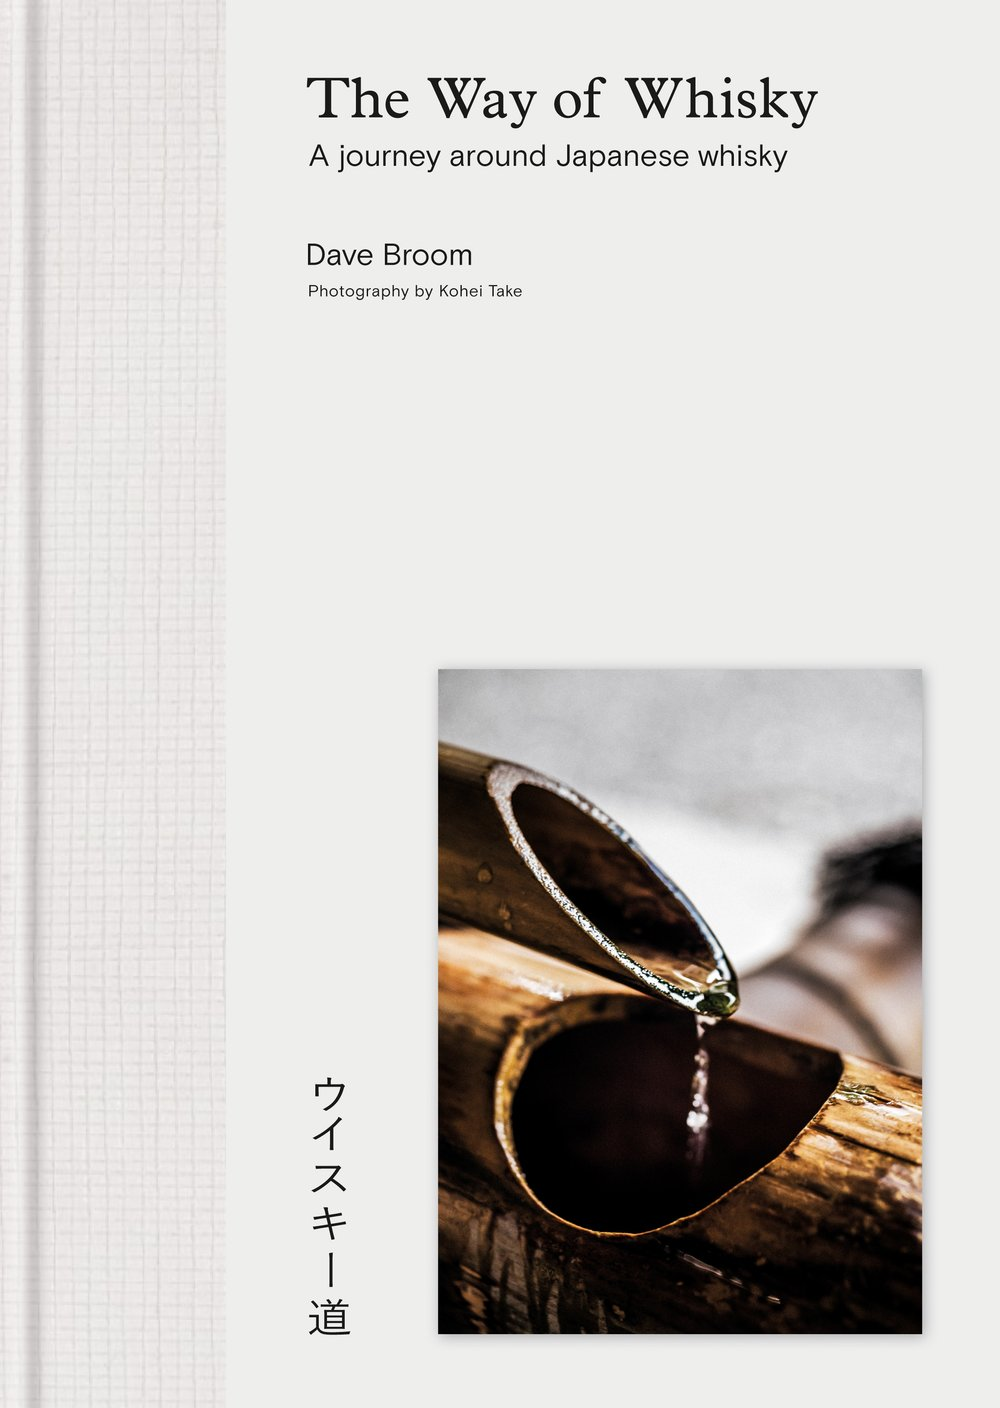 Dave Broom the way of whisky www.lovejapanmagazine.com